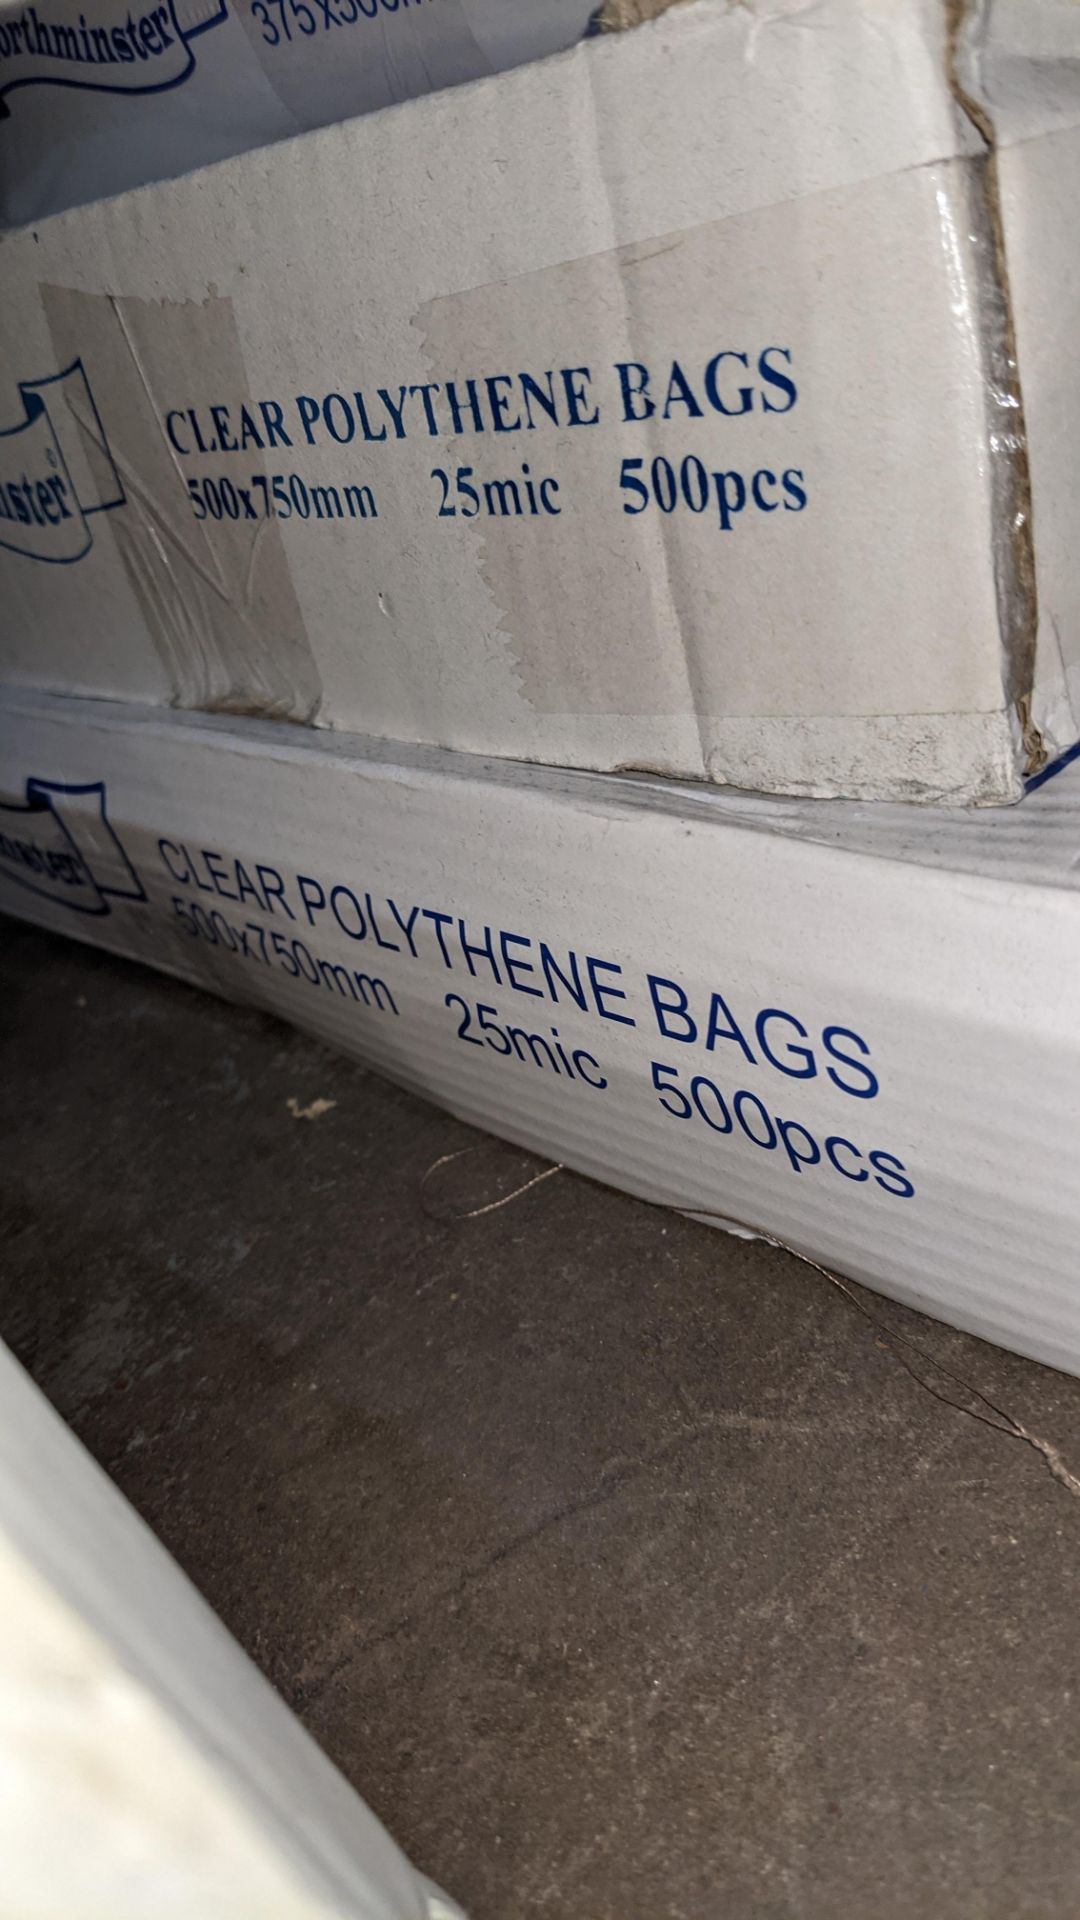 4 boxes of clear food bags by Worthminster - Image 5 of 6